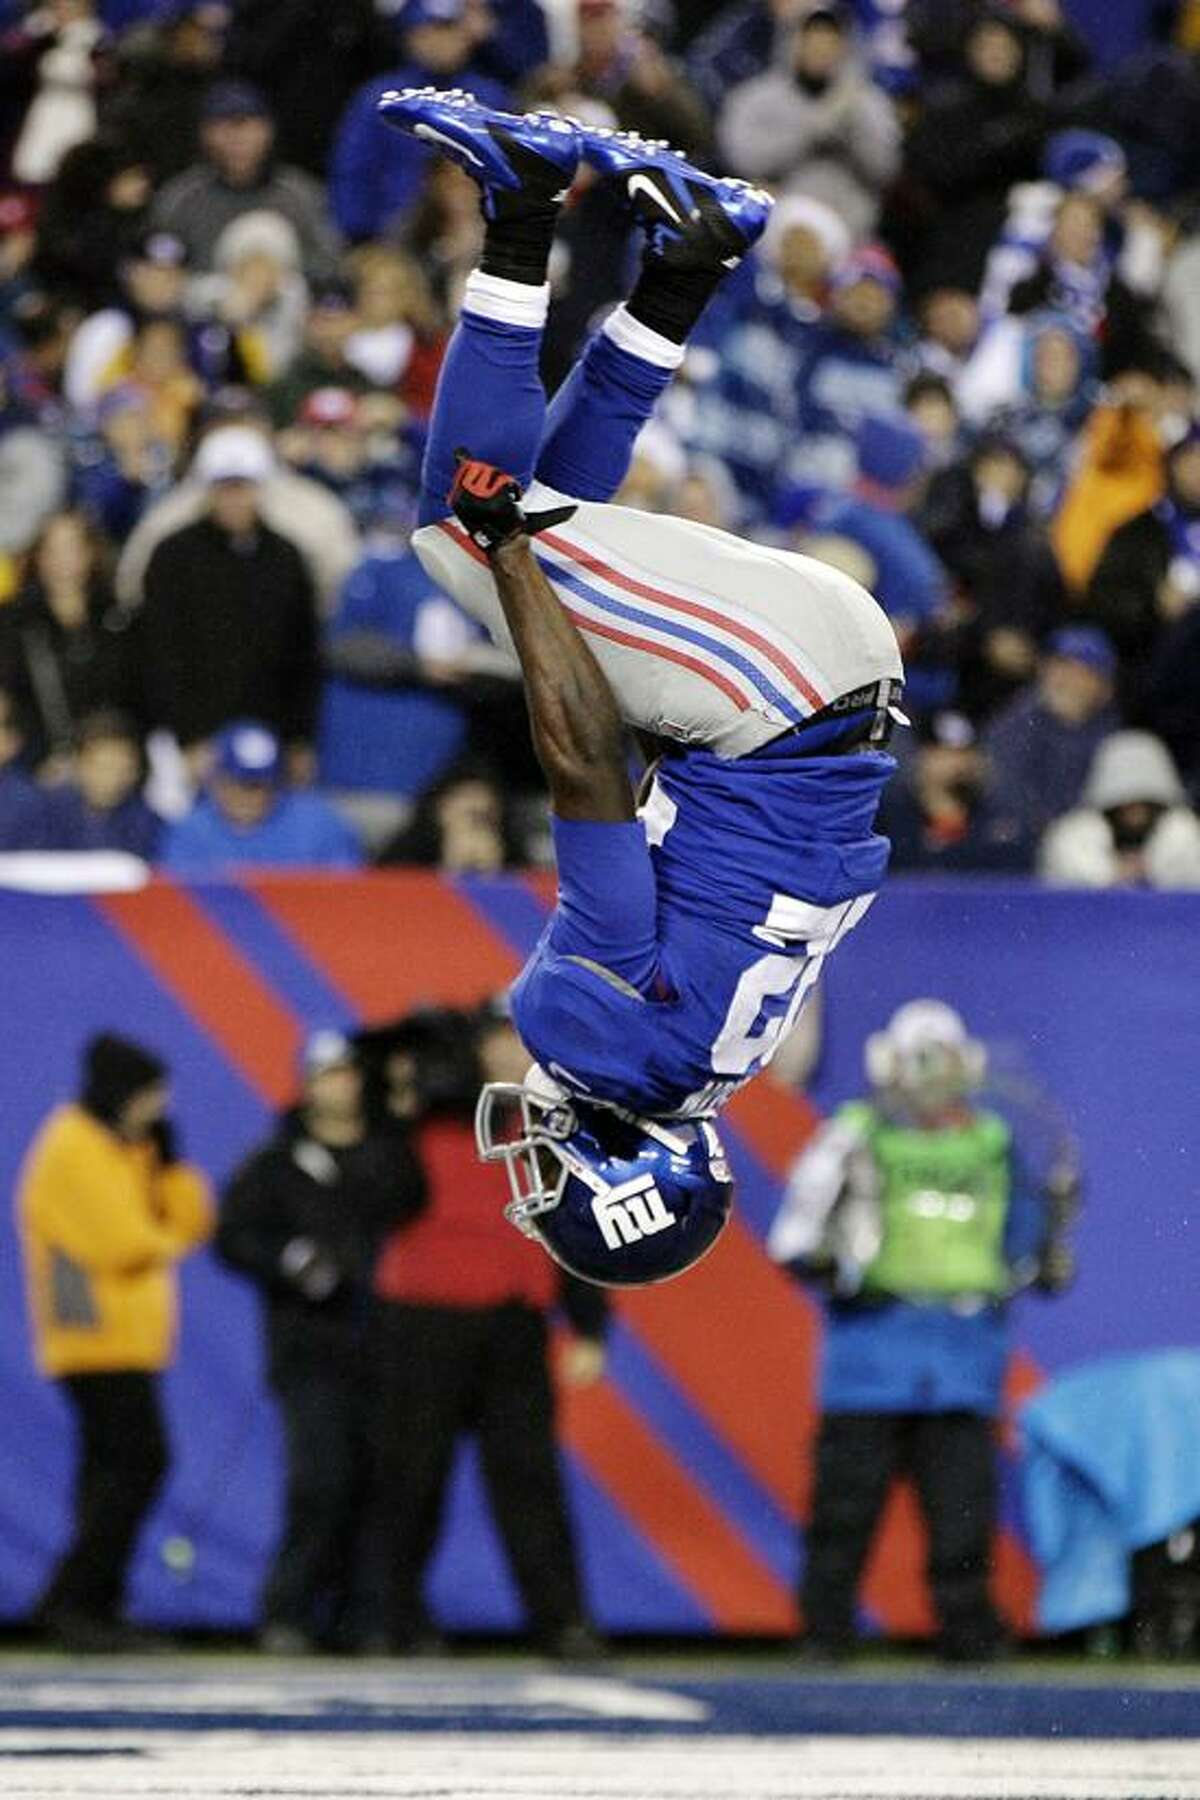 New York Giants running back David Wilson (22) flips after scoring on a 6-yard touchdown run during the second half of an NFL football game against the New Orleans Saints, Sunday, Dec. 9, 2012, in East Rutherford, N.J. (AP Photo/Kathy Willens)